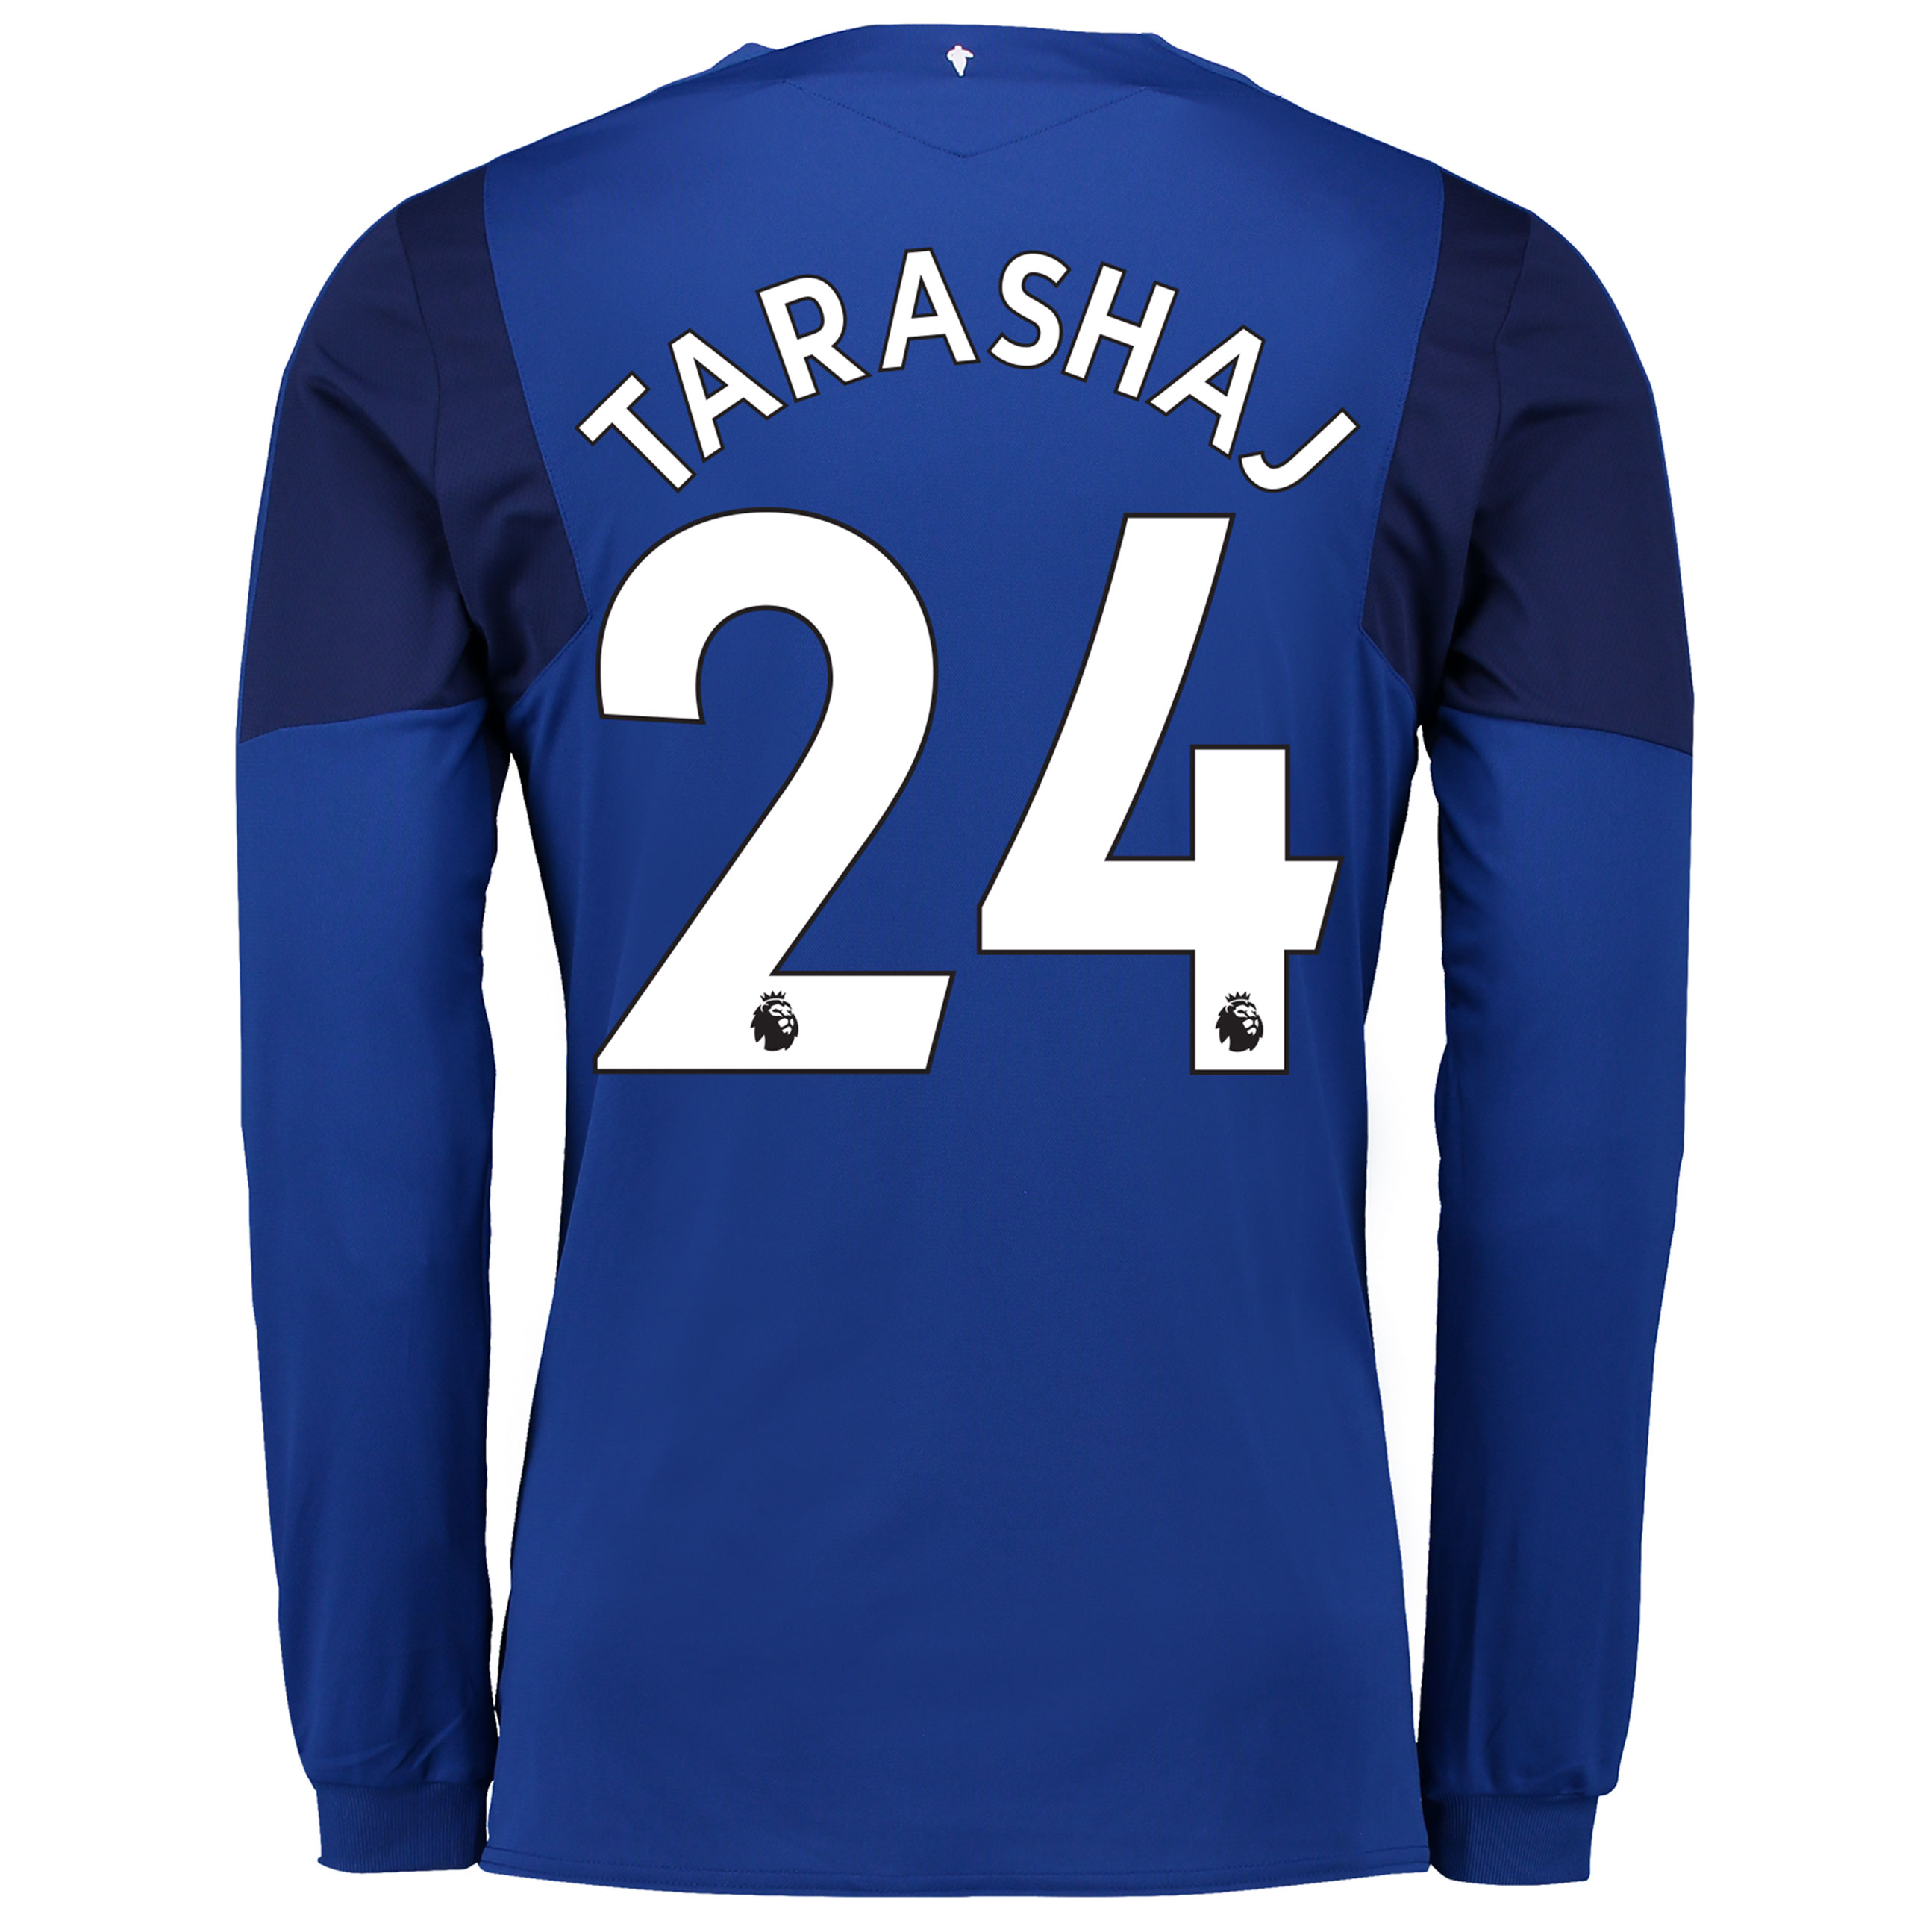 Everton Home Shirt 2017/18 - Long Sleeved with Tarashaj 24 printing